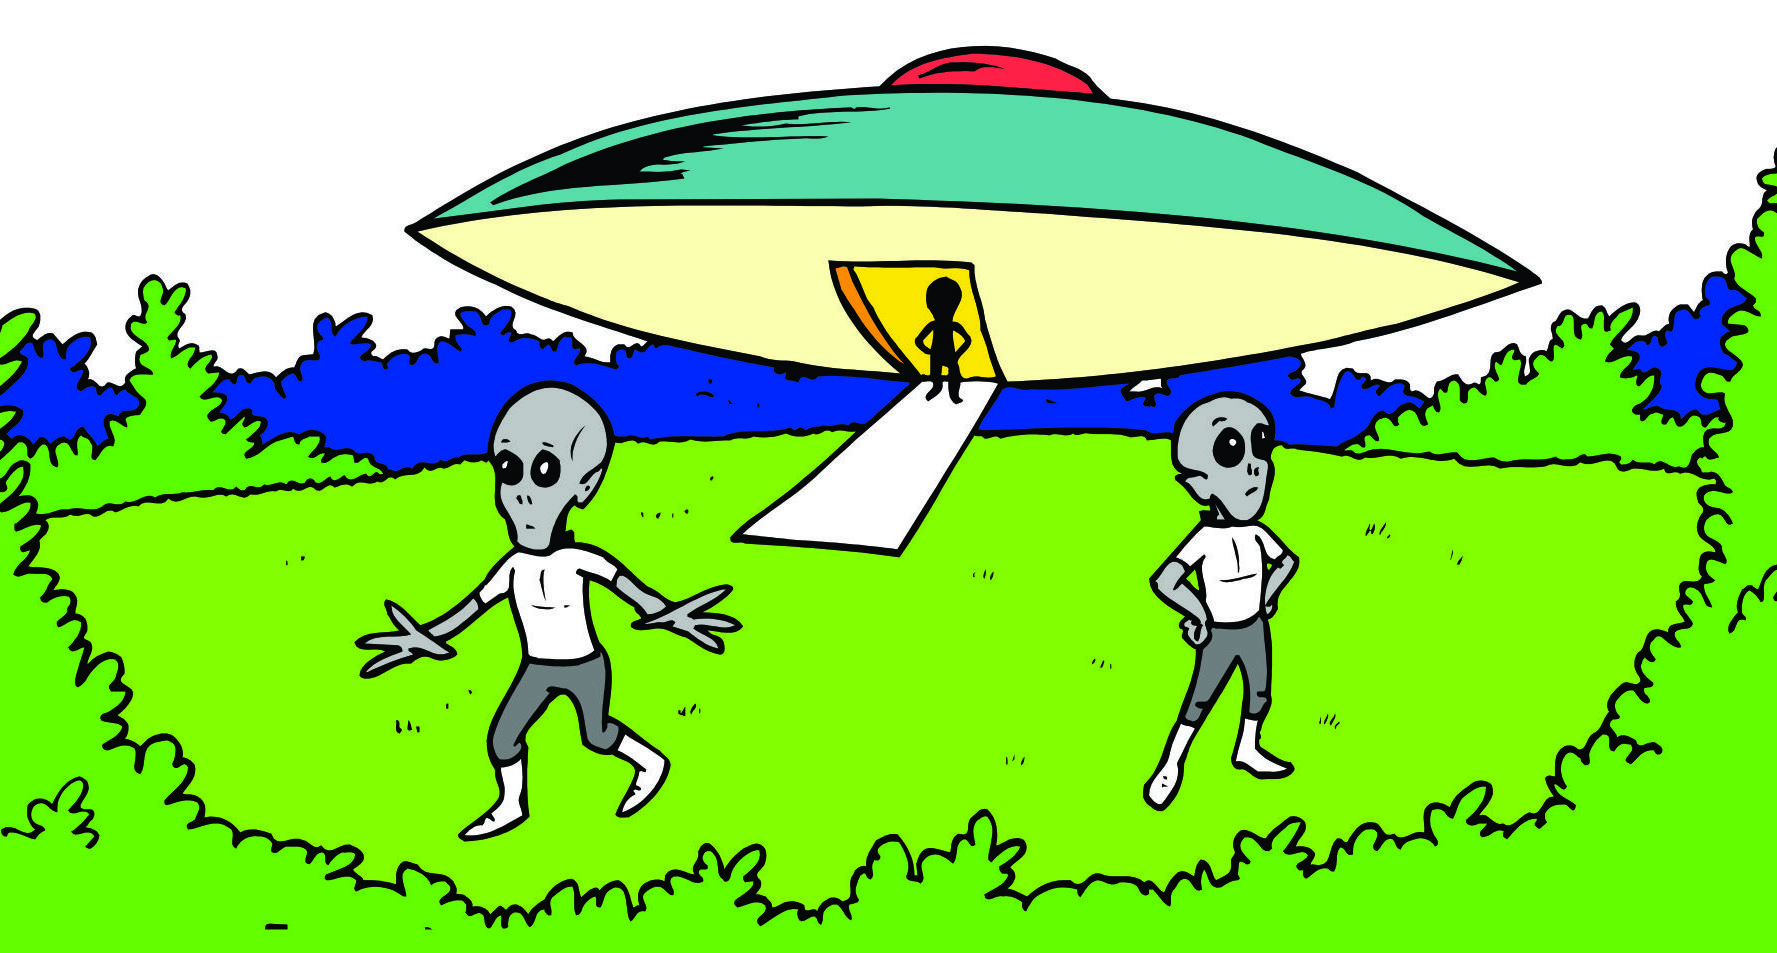 free clipart alien spaceship - photo #14